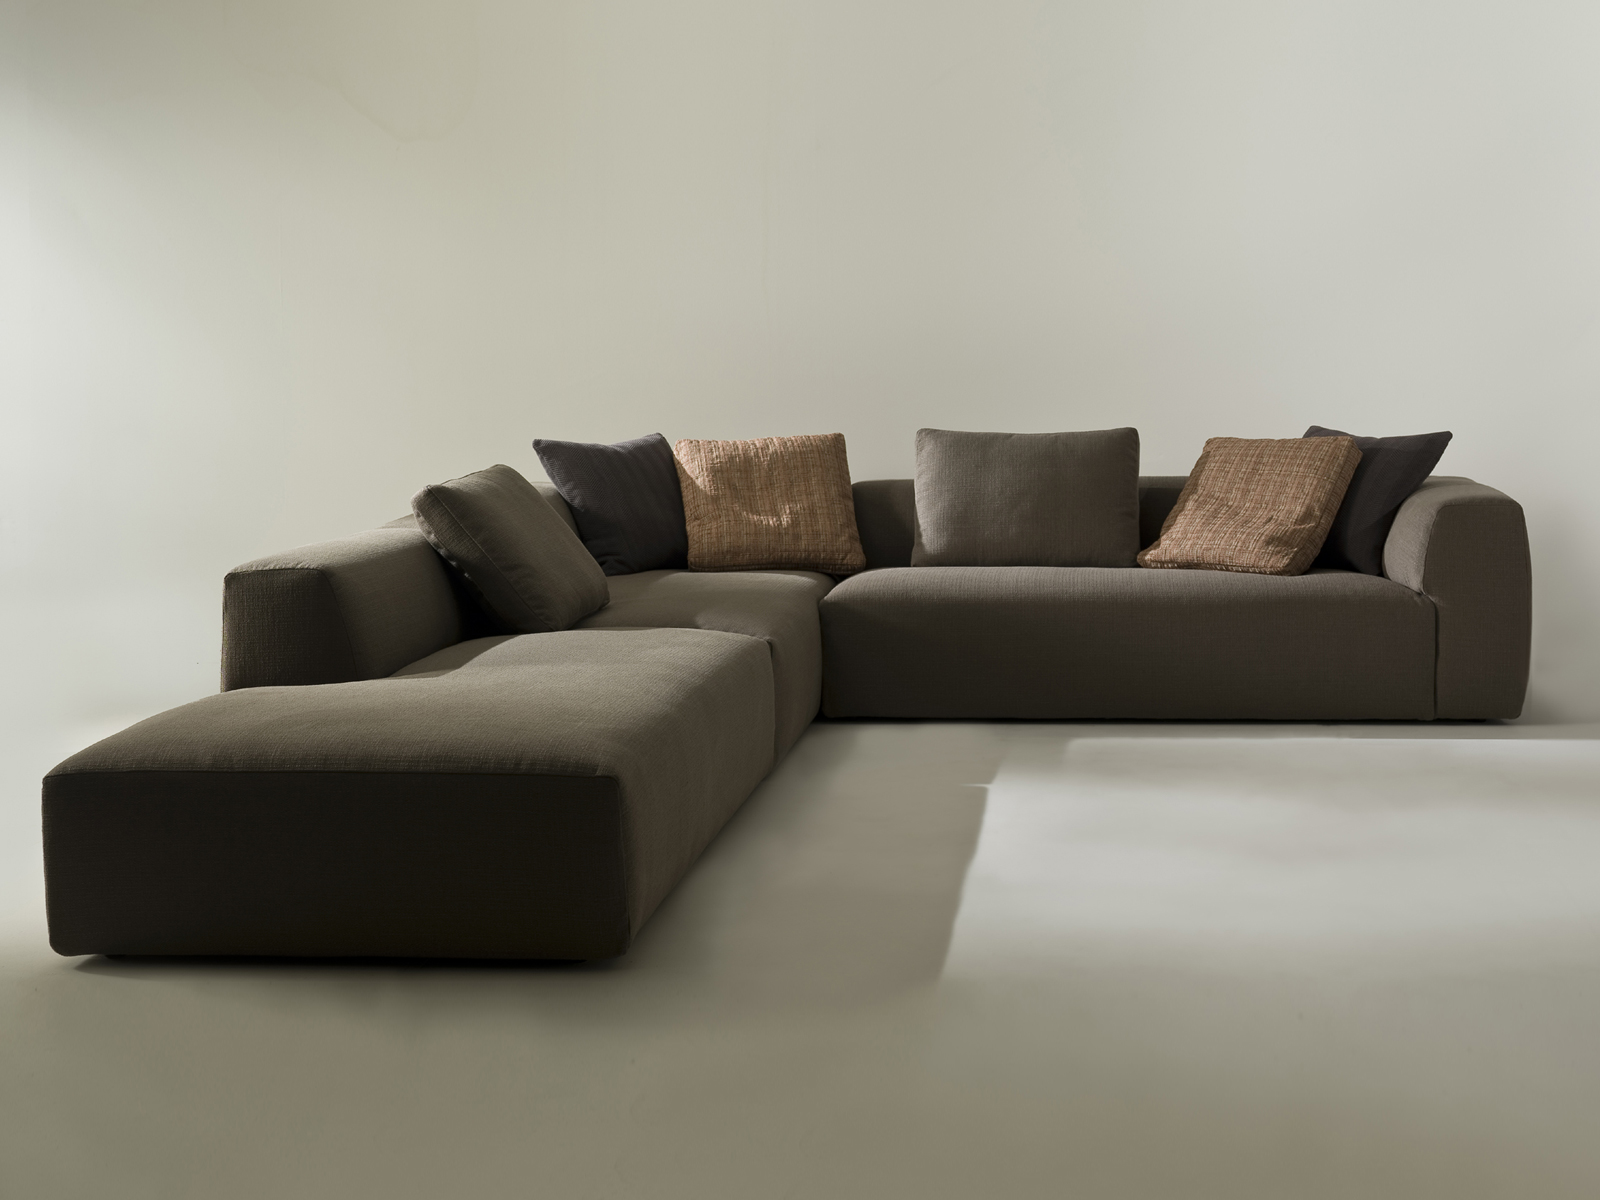 small corner sofa design sofa design variant of corner sofa design small corner couches from stylish URCDUXY